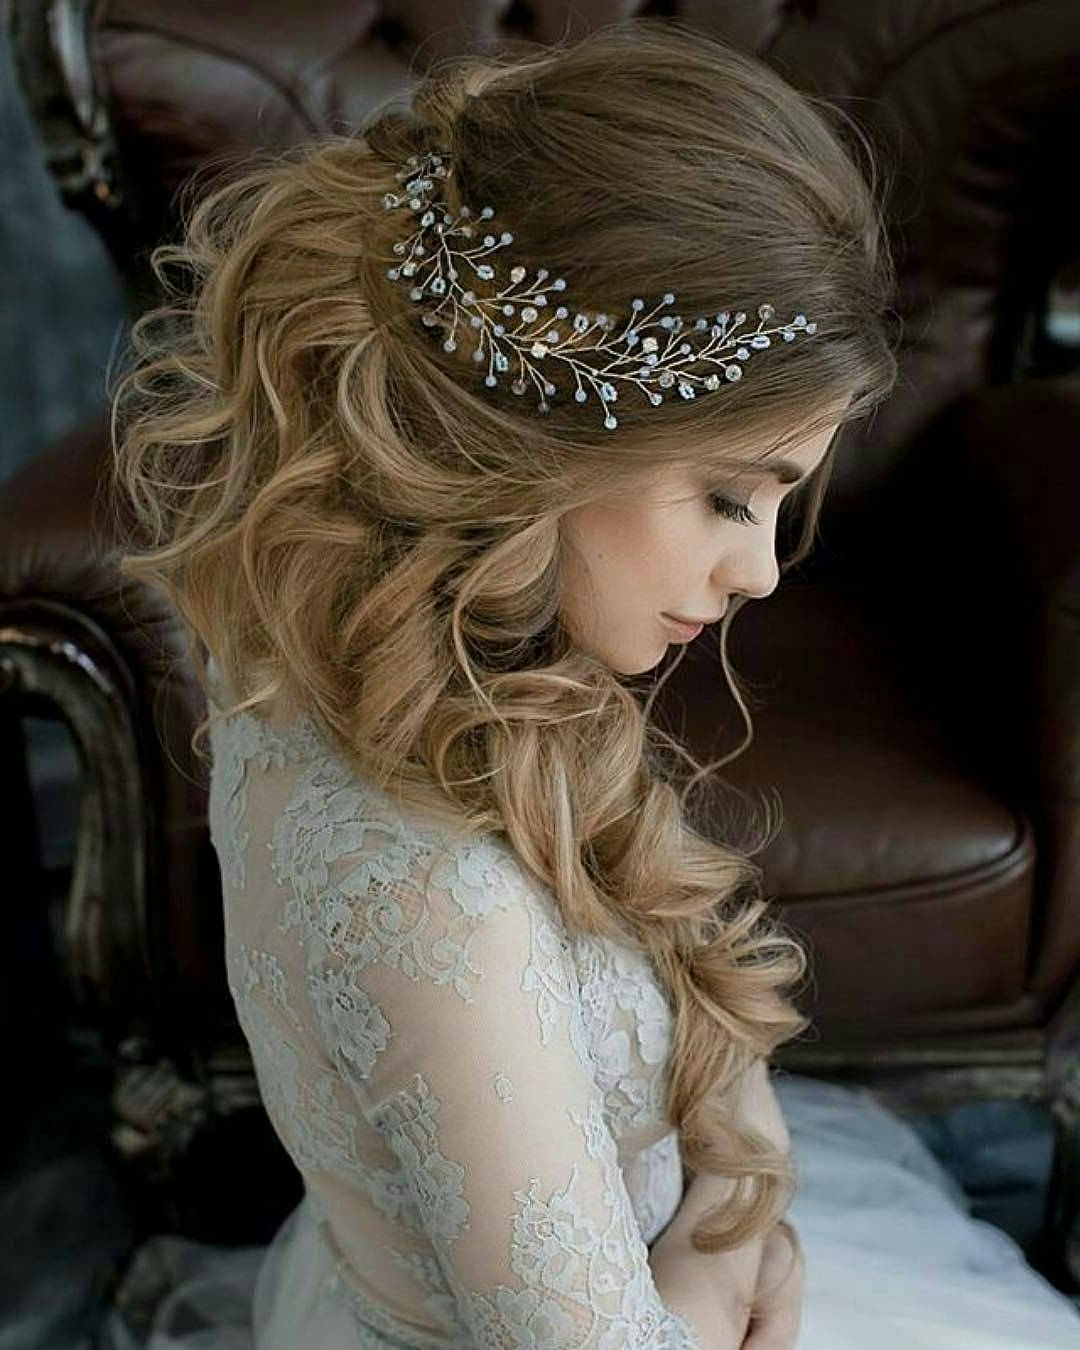 10 Lavish Wedding Hairstyles For Long Hair – Wedding Hairstyle Ideas Regarding Widely Used Wedding Updos With Bow Design (View 16 of 20)